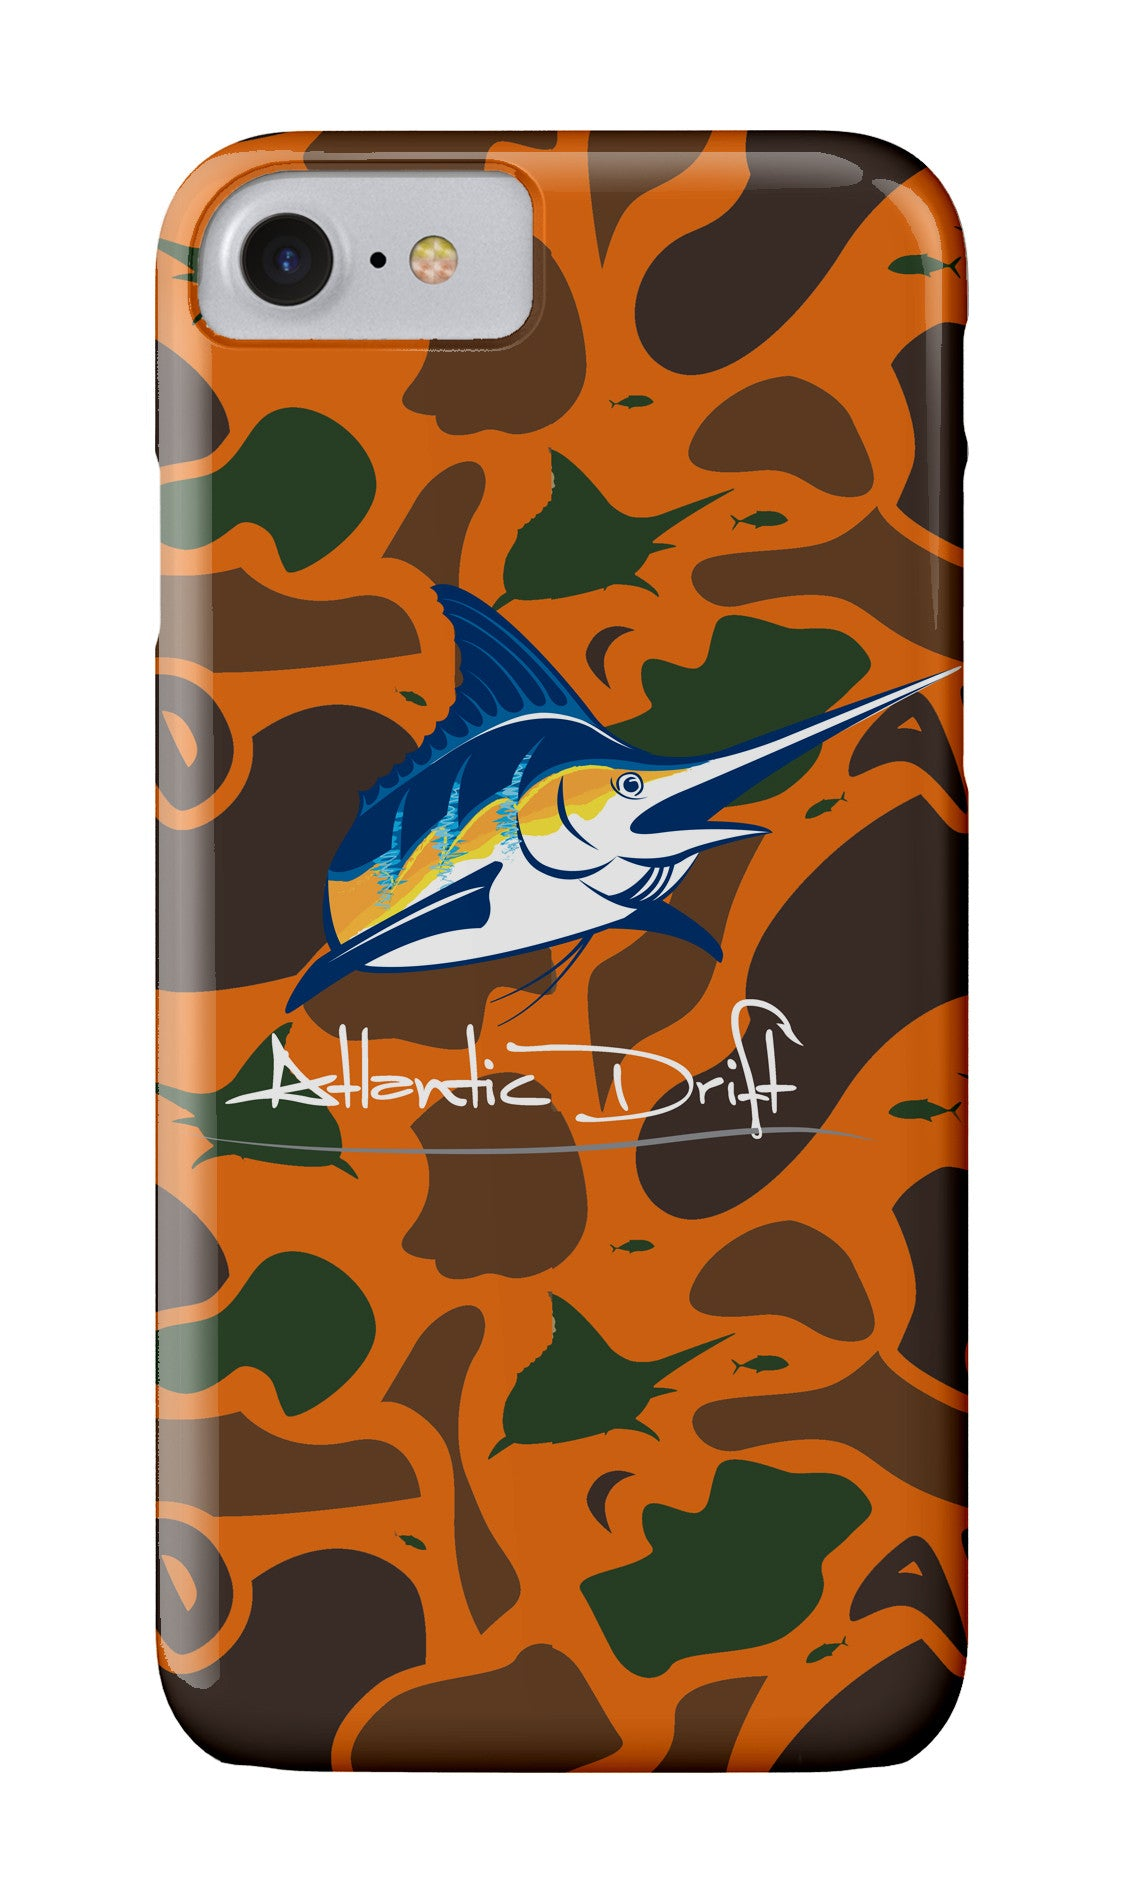 AD Blaze Orange Camo Case - Atlantic Drift